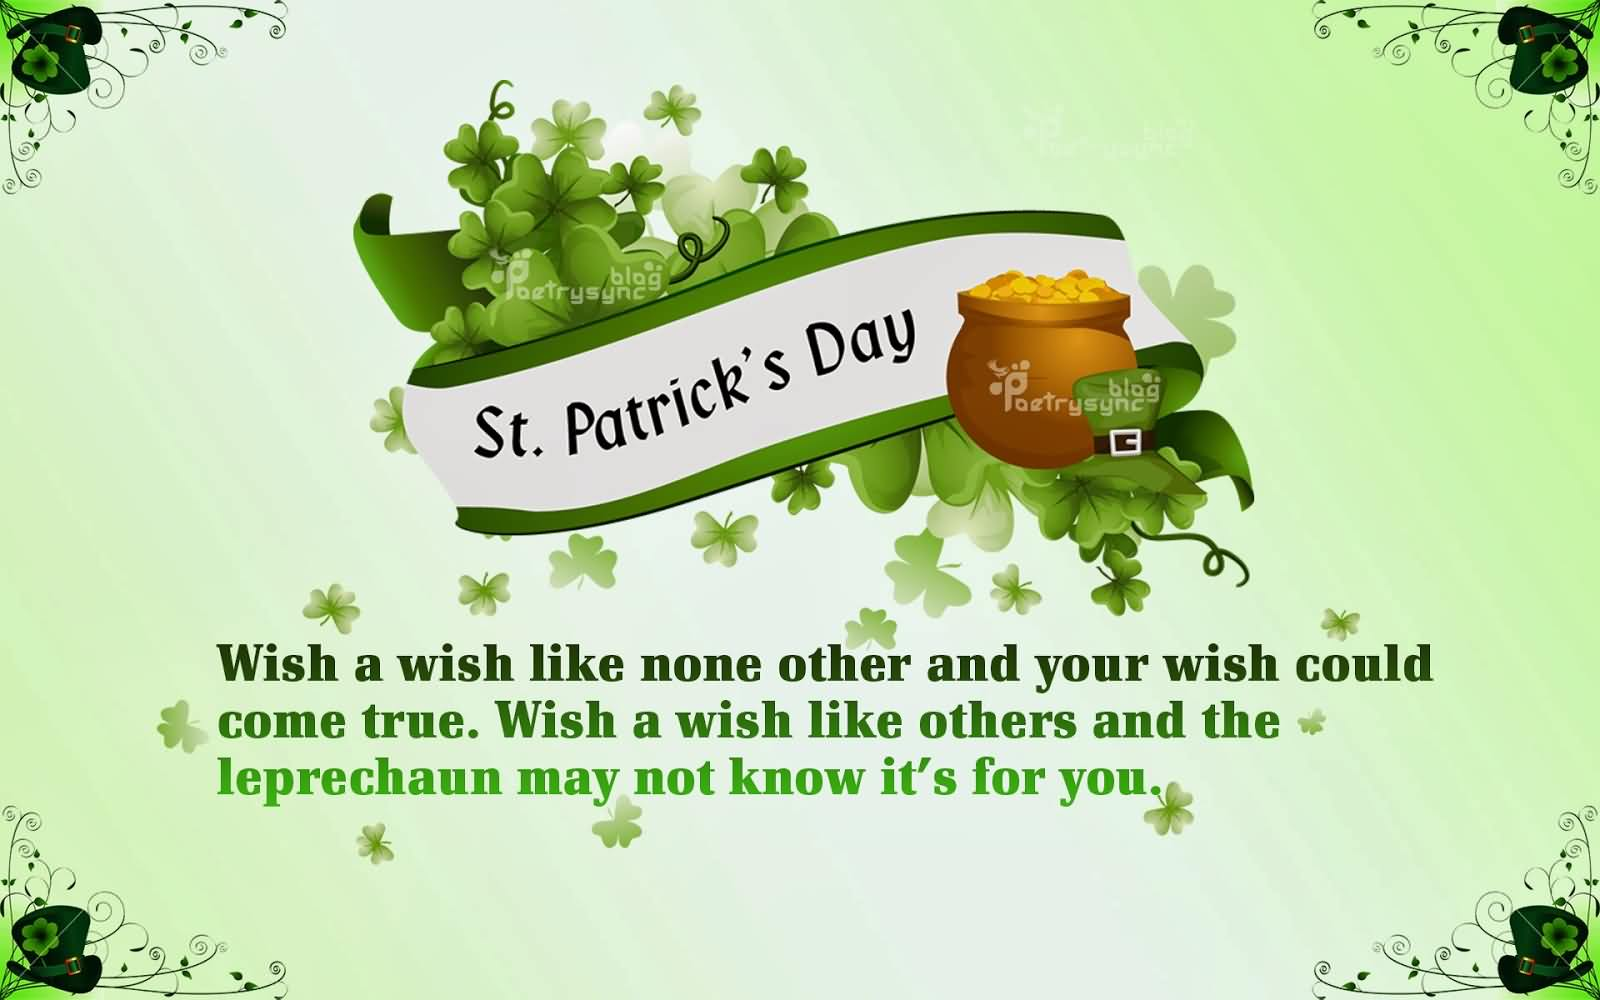 Best Wishes Have A Great Day Happy St. Patrick's Day